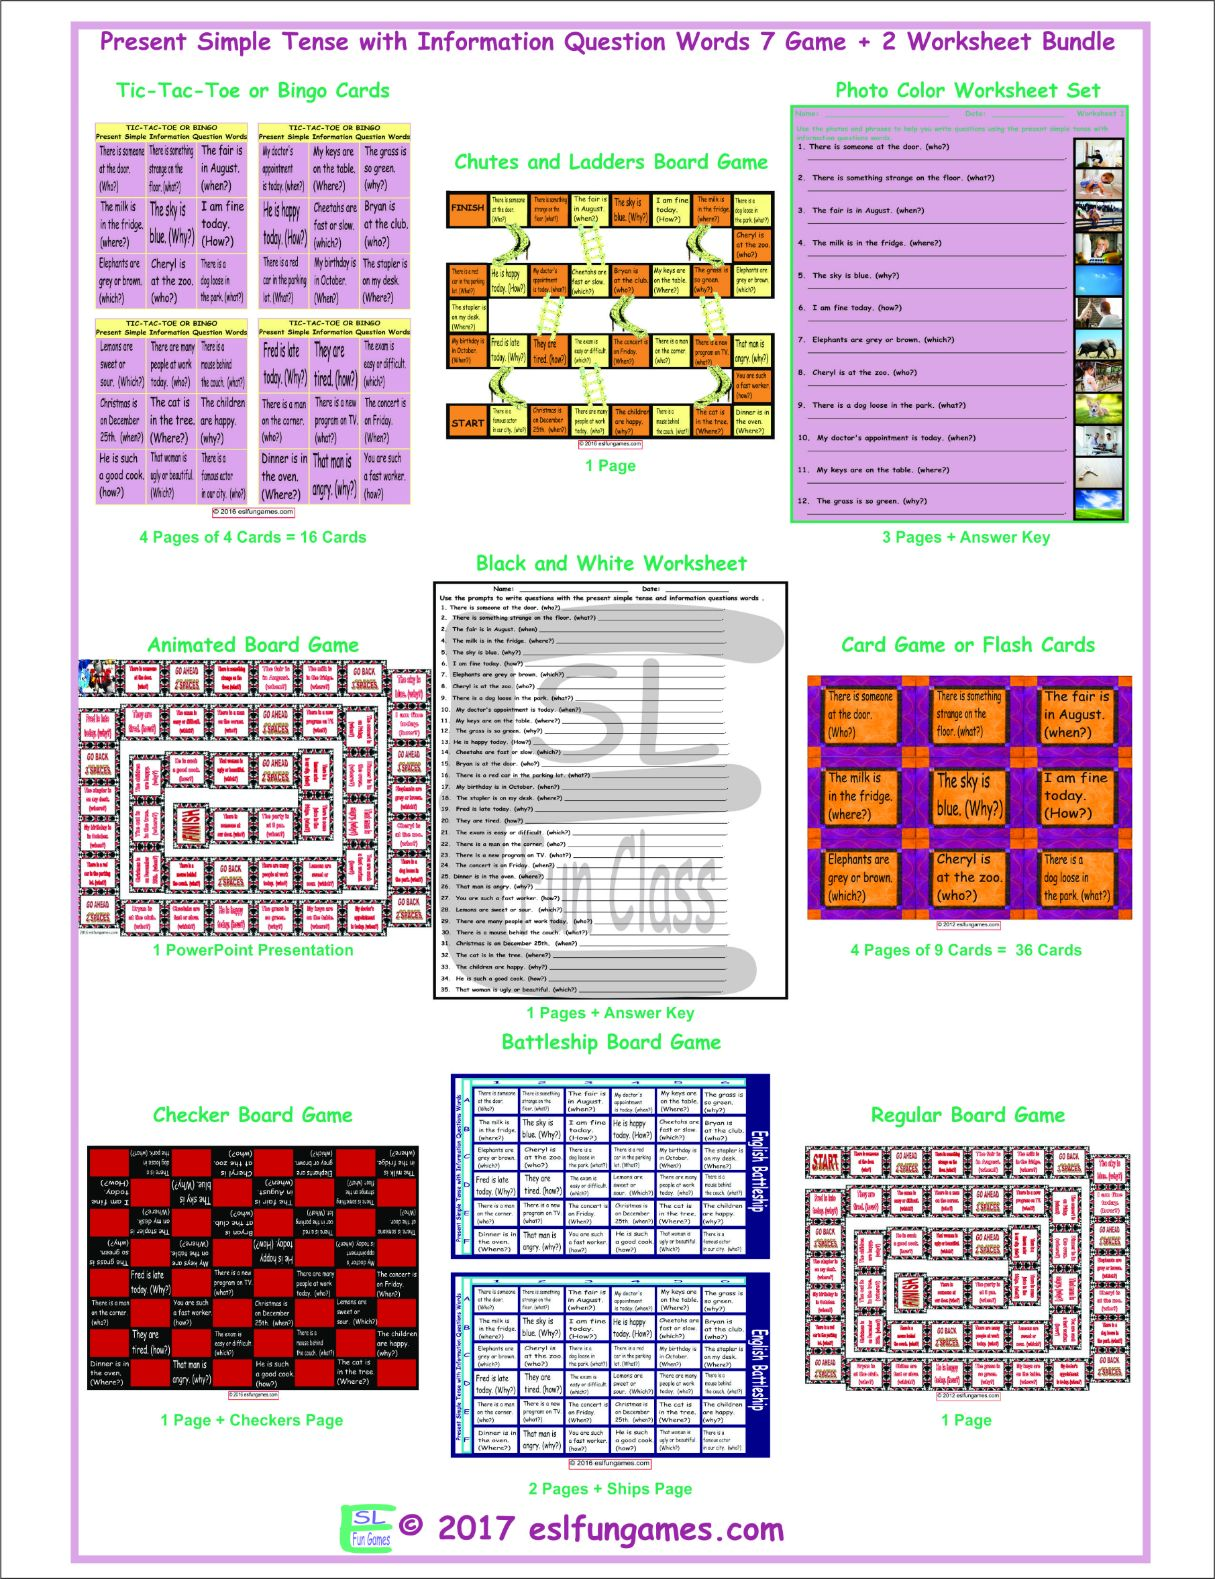 Present Simple Tense with Information Question Words 7 Game Plus 2 Worksheet Bundle